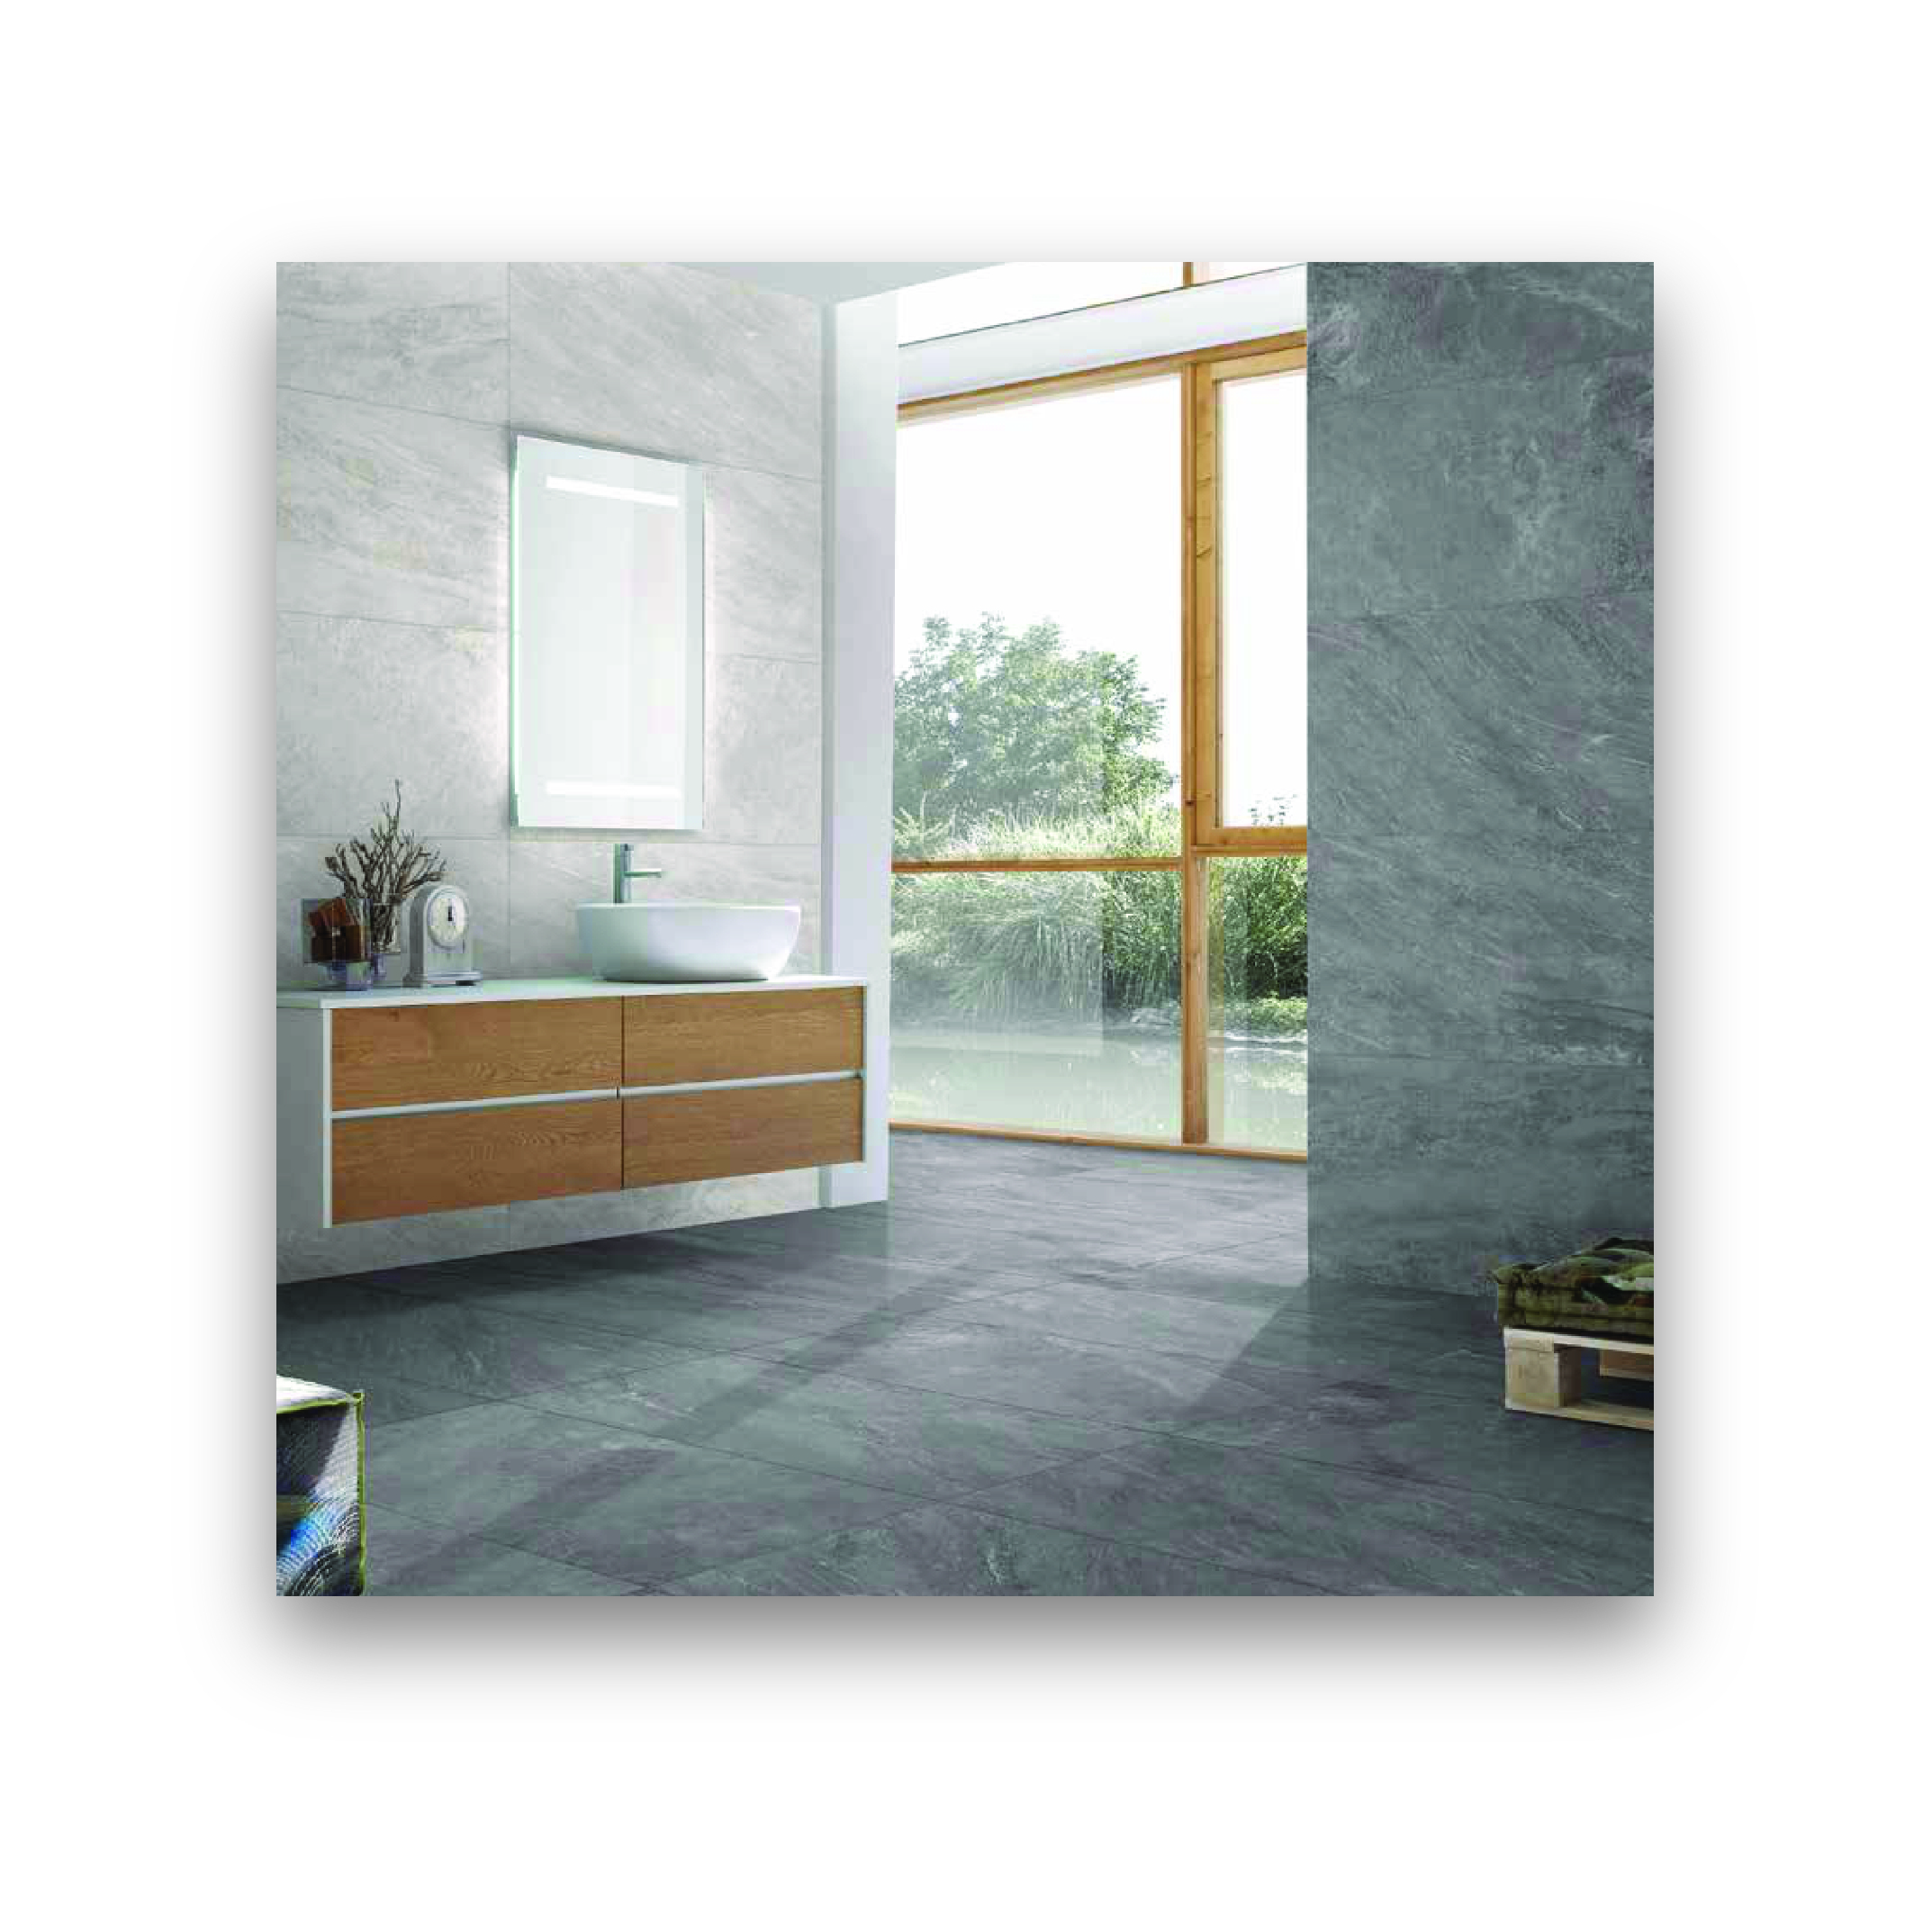 All Natural Stone Stock Material, All Natural Stone Stock Porcelain, Aspen